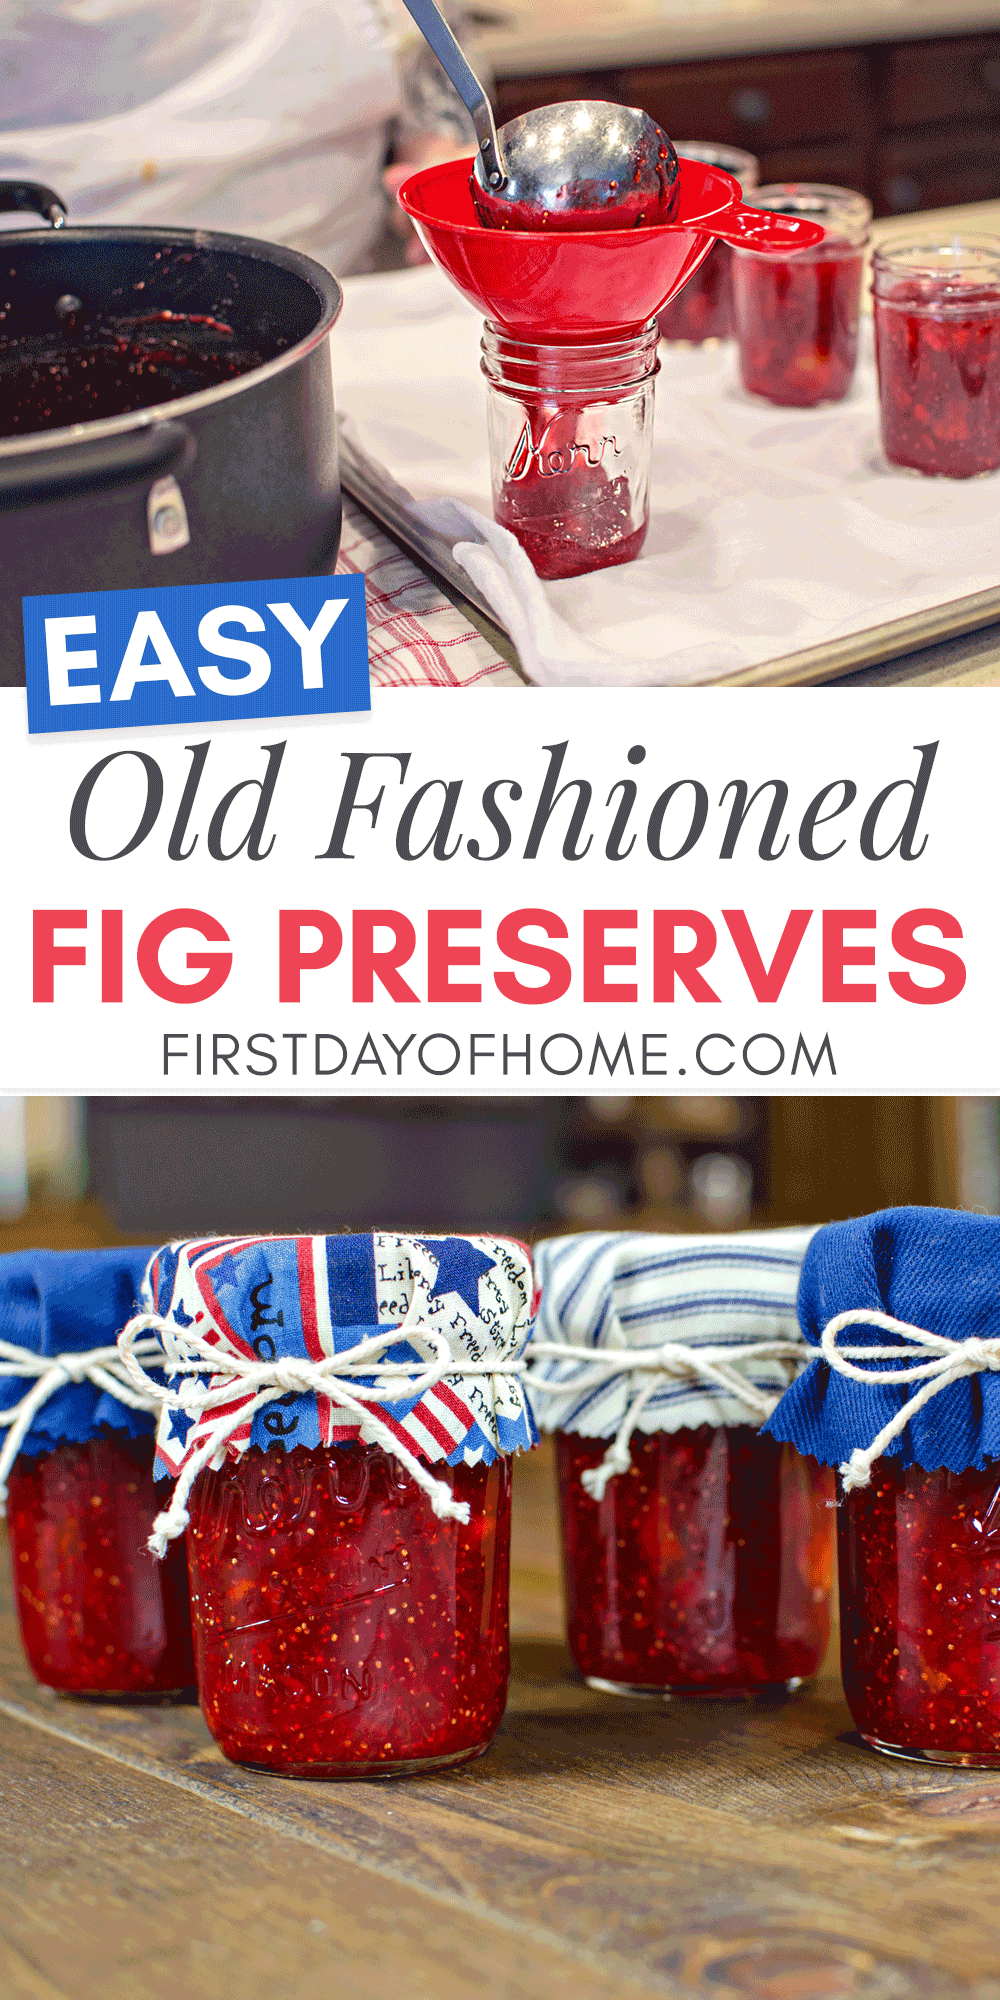 Fig preserves made the old fashioned way and canned properly